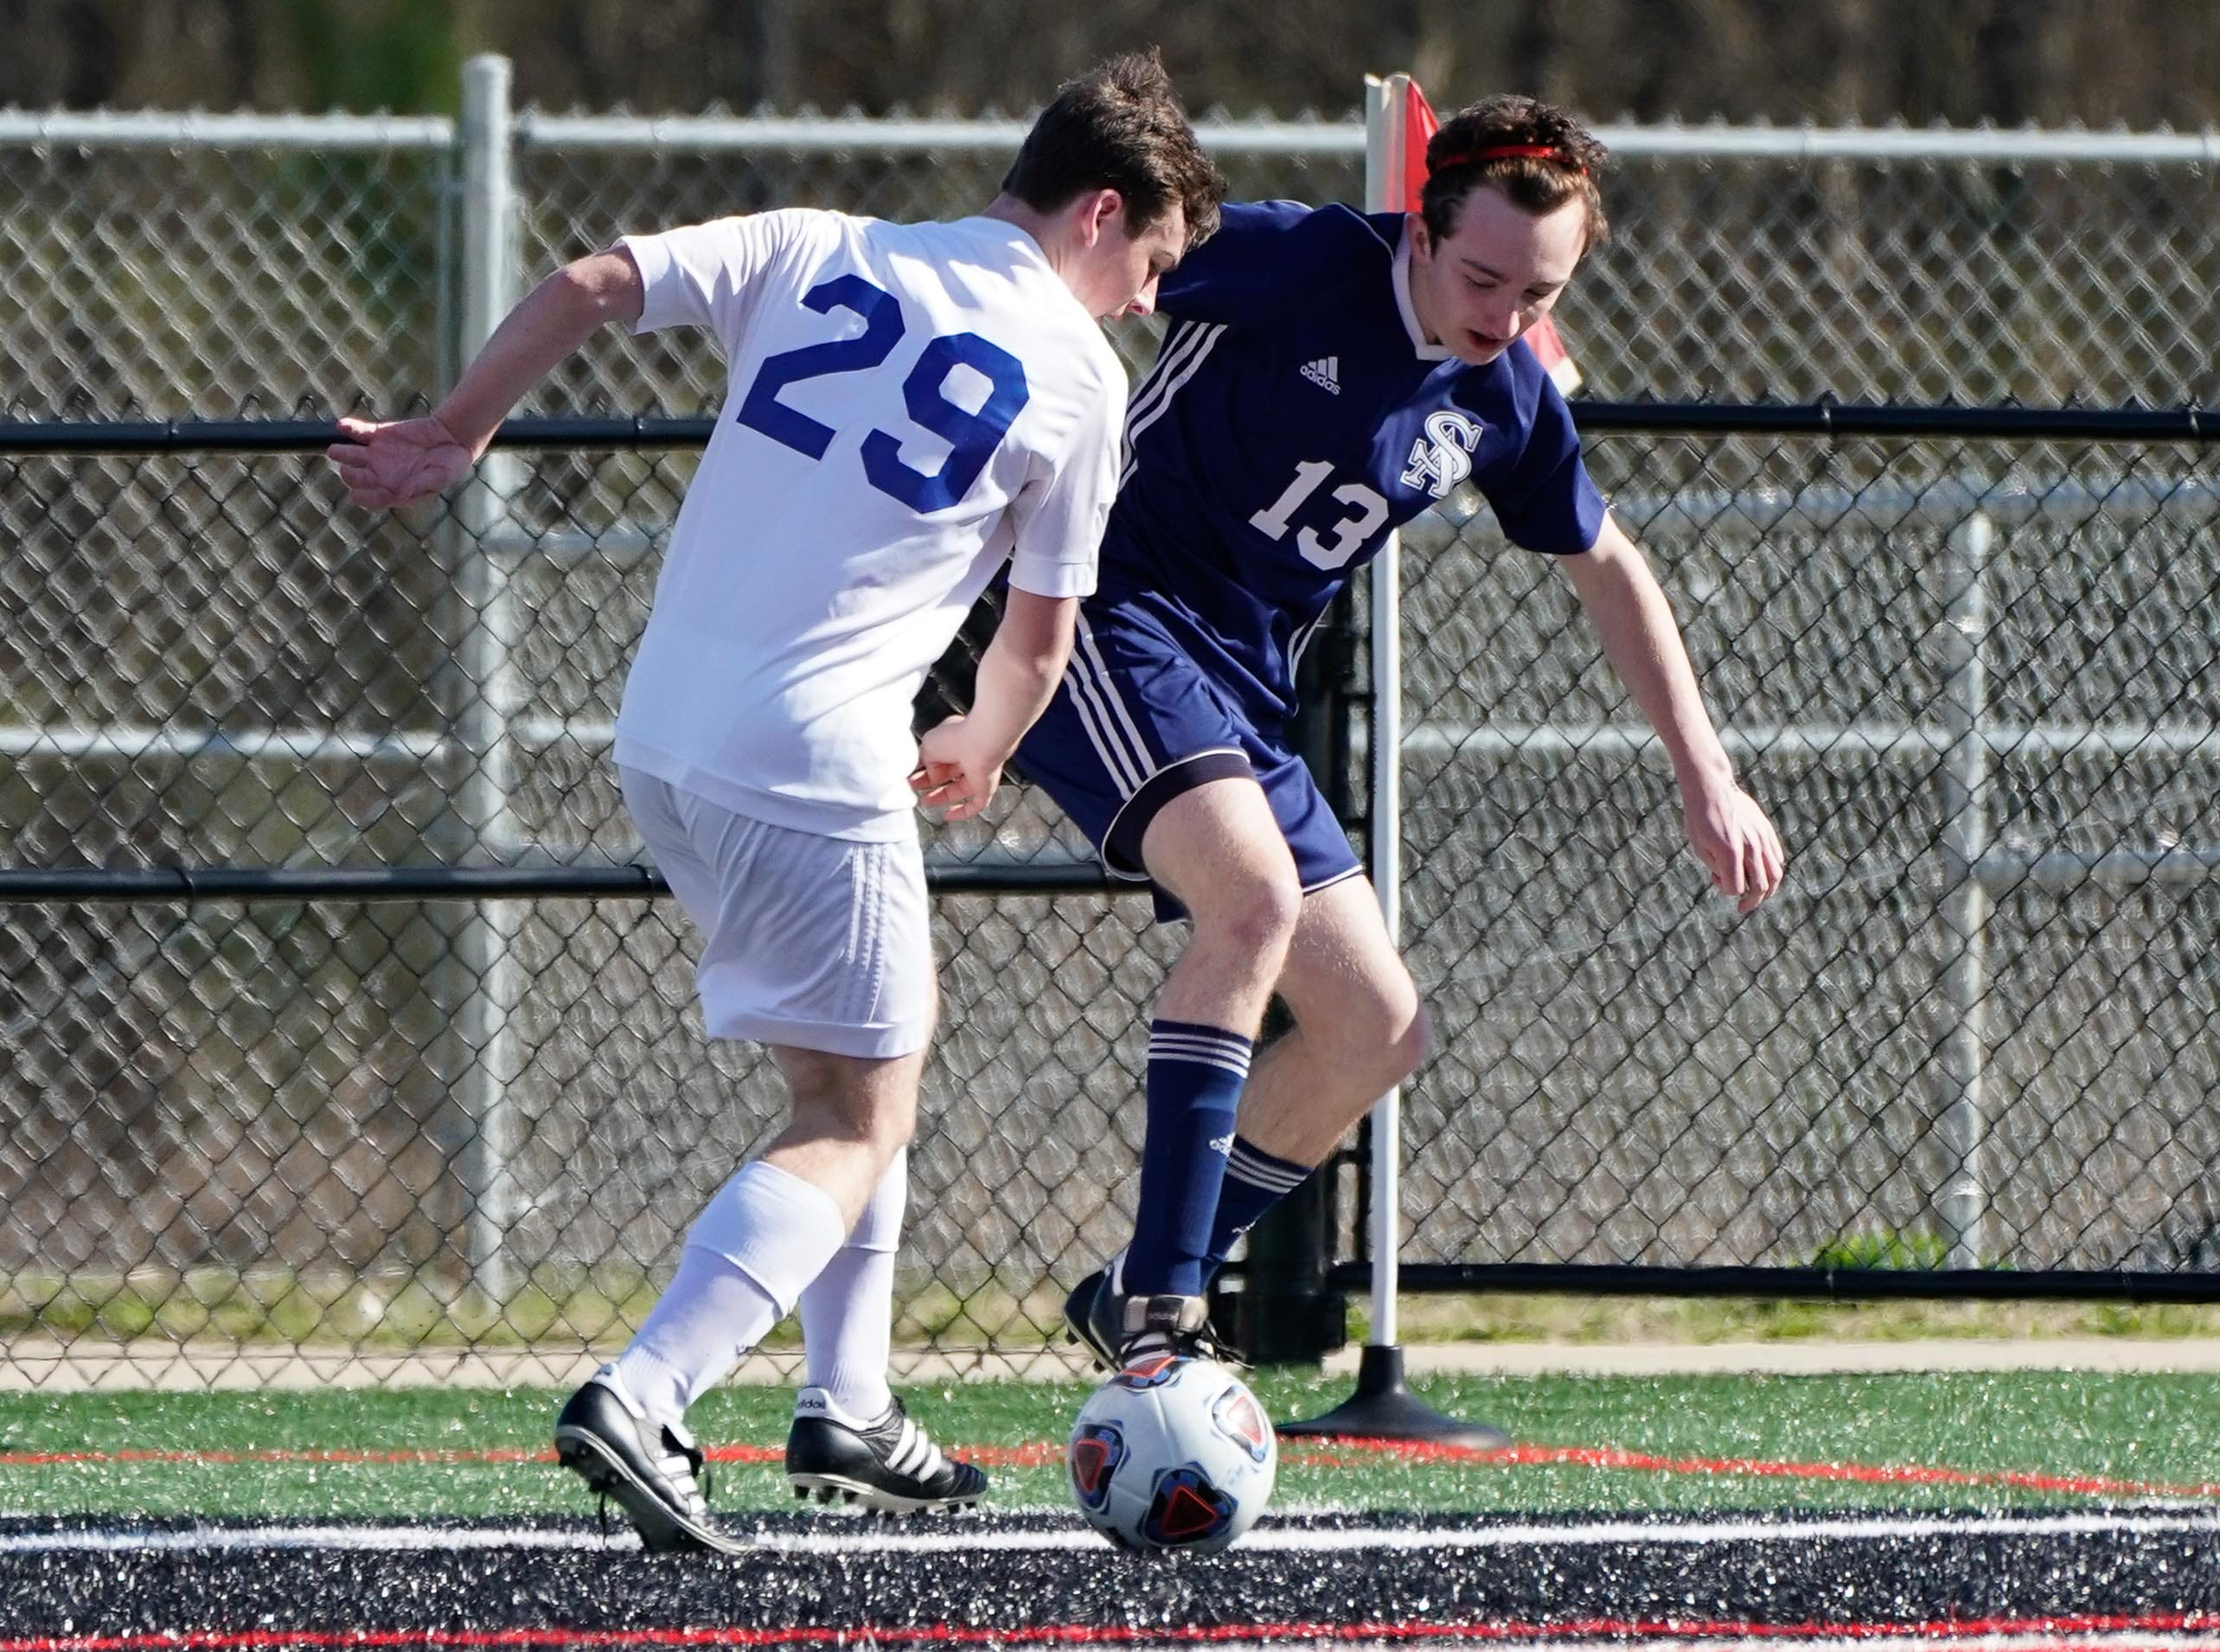 St. Andrew's John Mychal Warren (13) and Sacred Heart's Sam Magee (29) fight for a ball  during the MHSAA 1A,2A,3A  Boys Soccer Championships held at Brandon High School in Brandon, MS, Saturday February 9, 2019.(Bob Smith-For The Clarion Ledger)